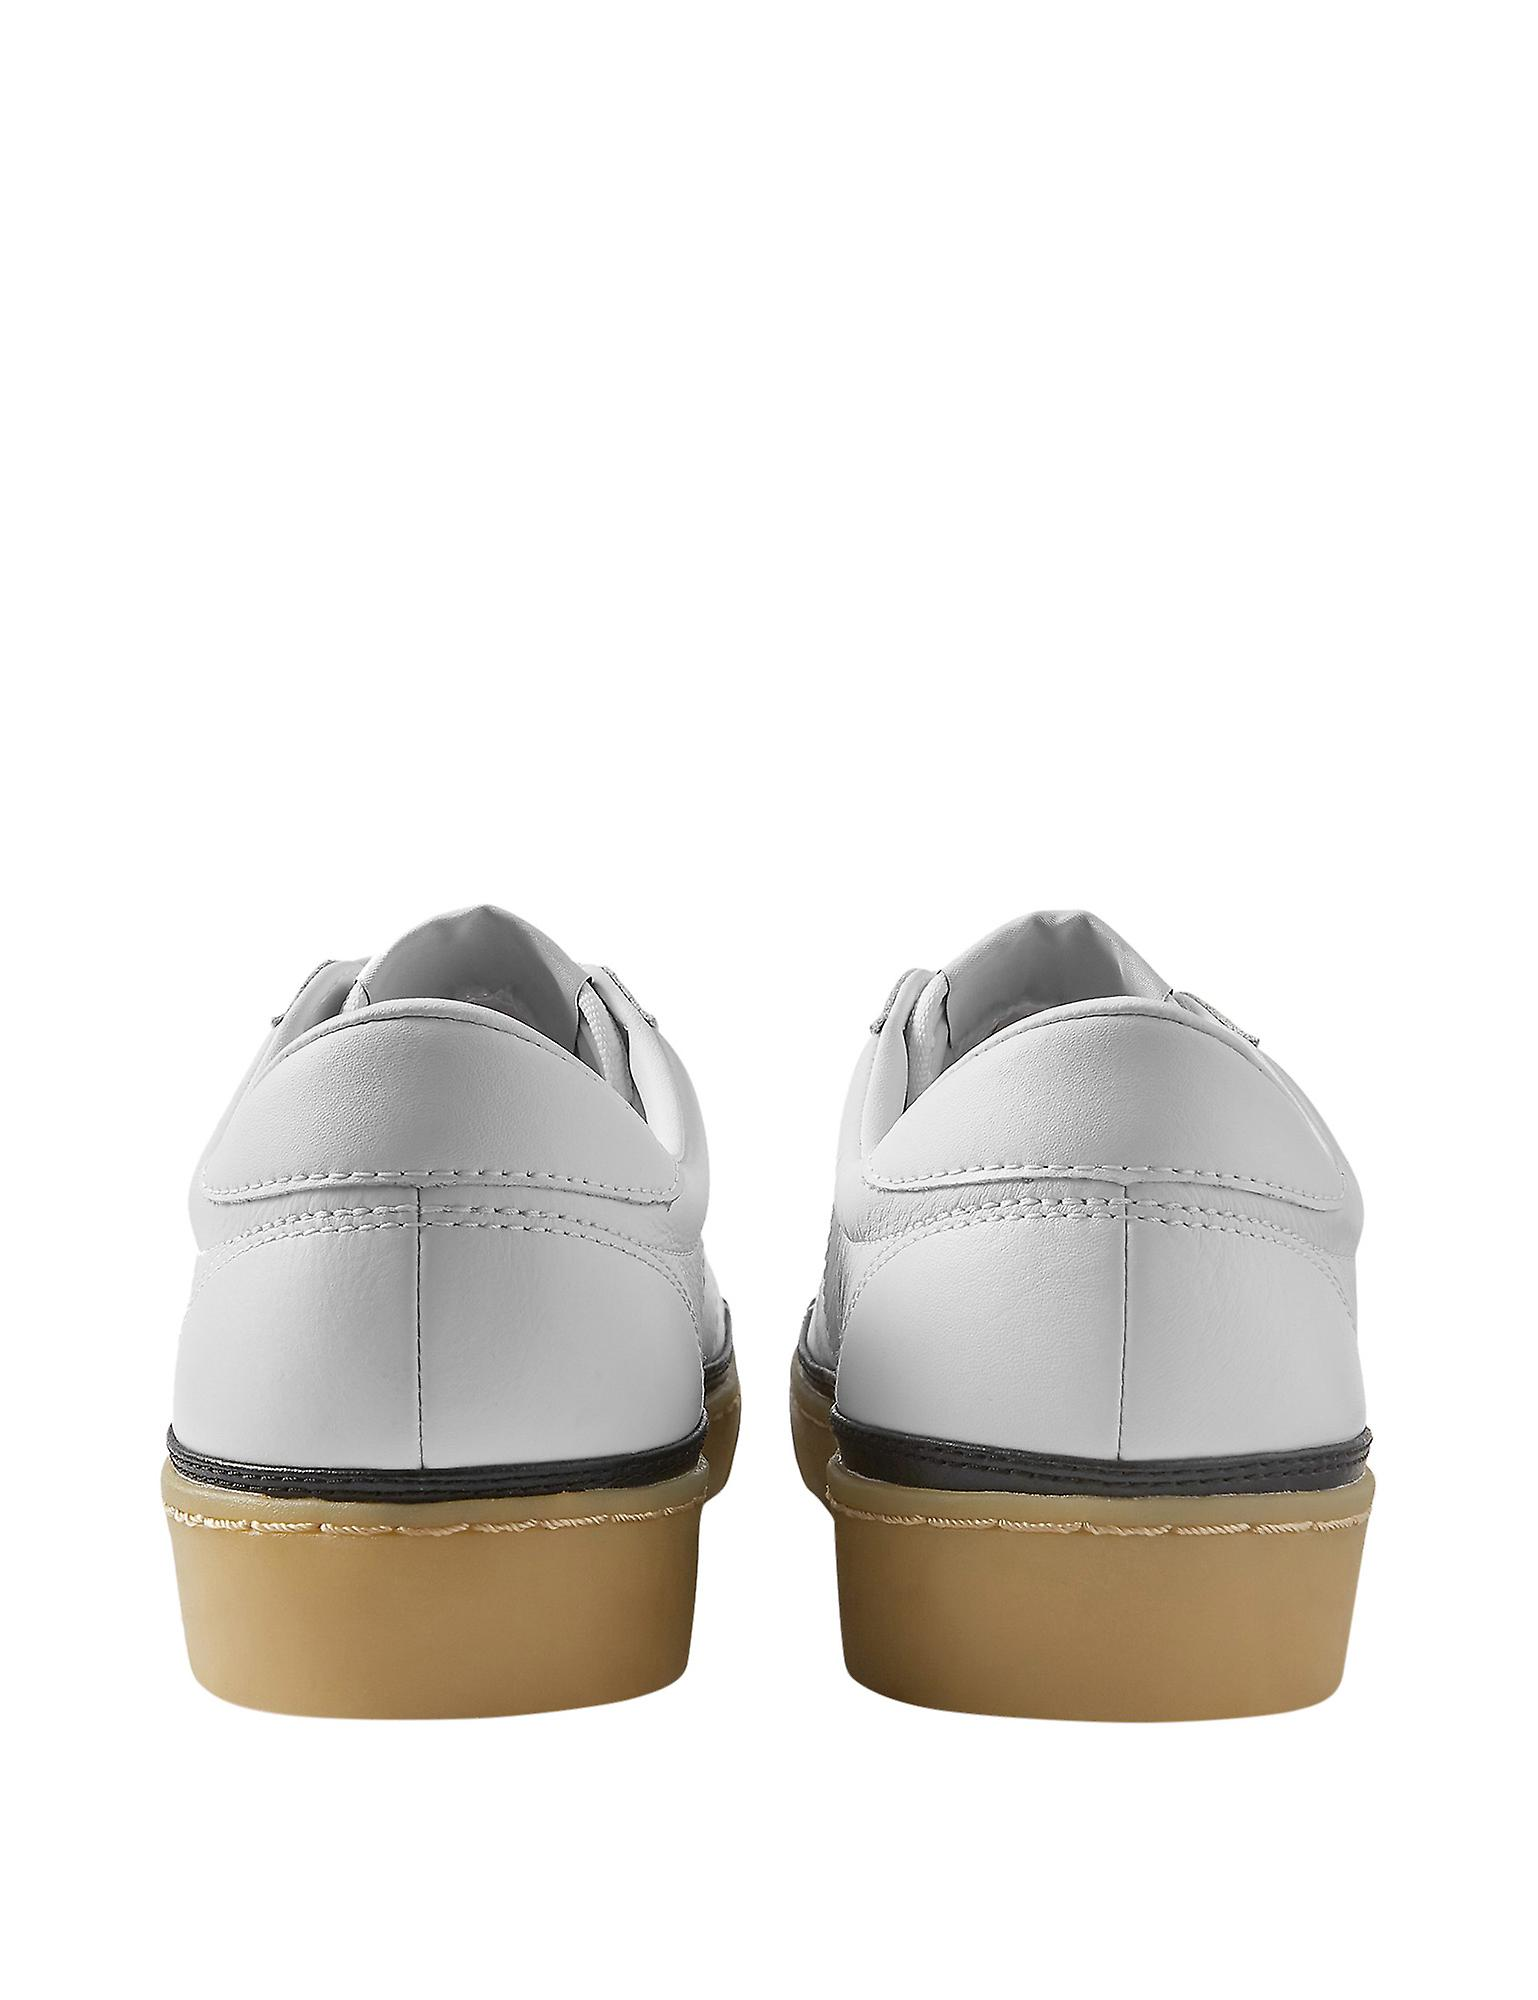 Fred Perry Men's Spencer Sneakers Leather